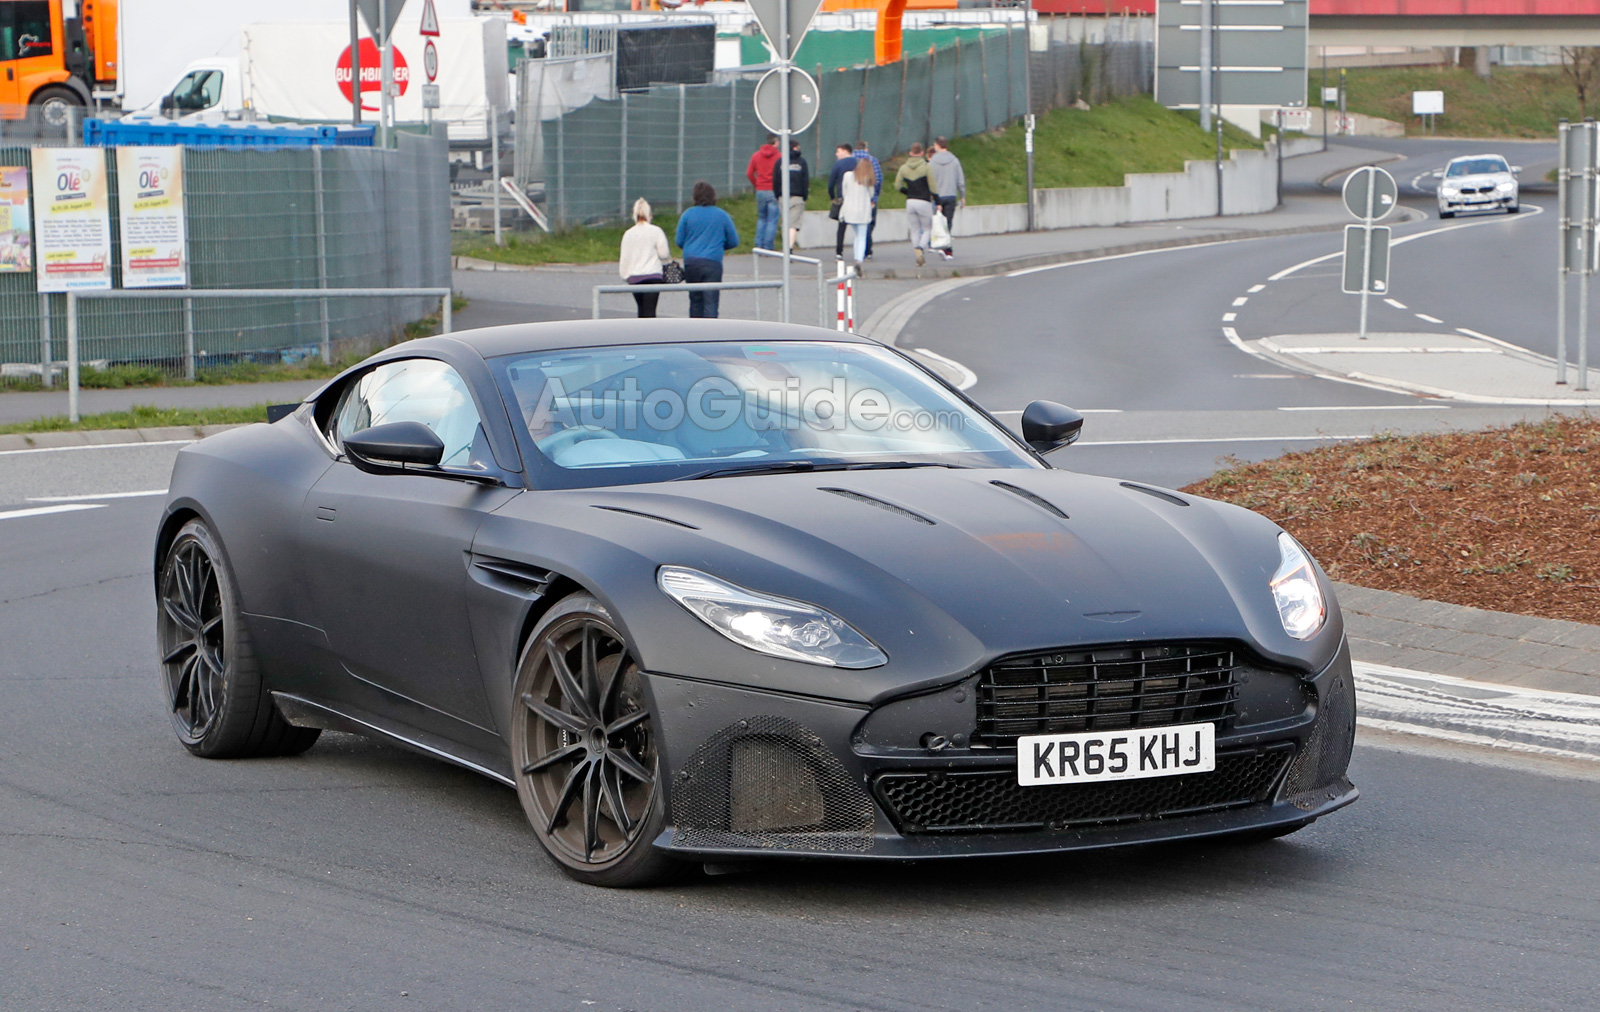 Hot Aston Martin Db11 S Spied Looking Fierce Autoguide Com News